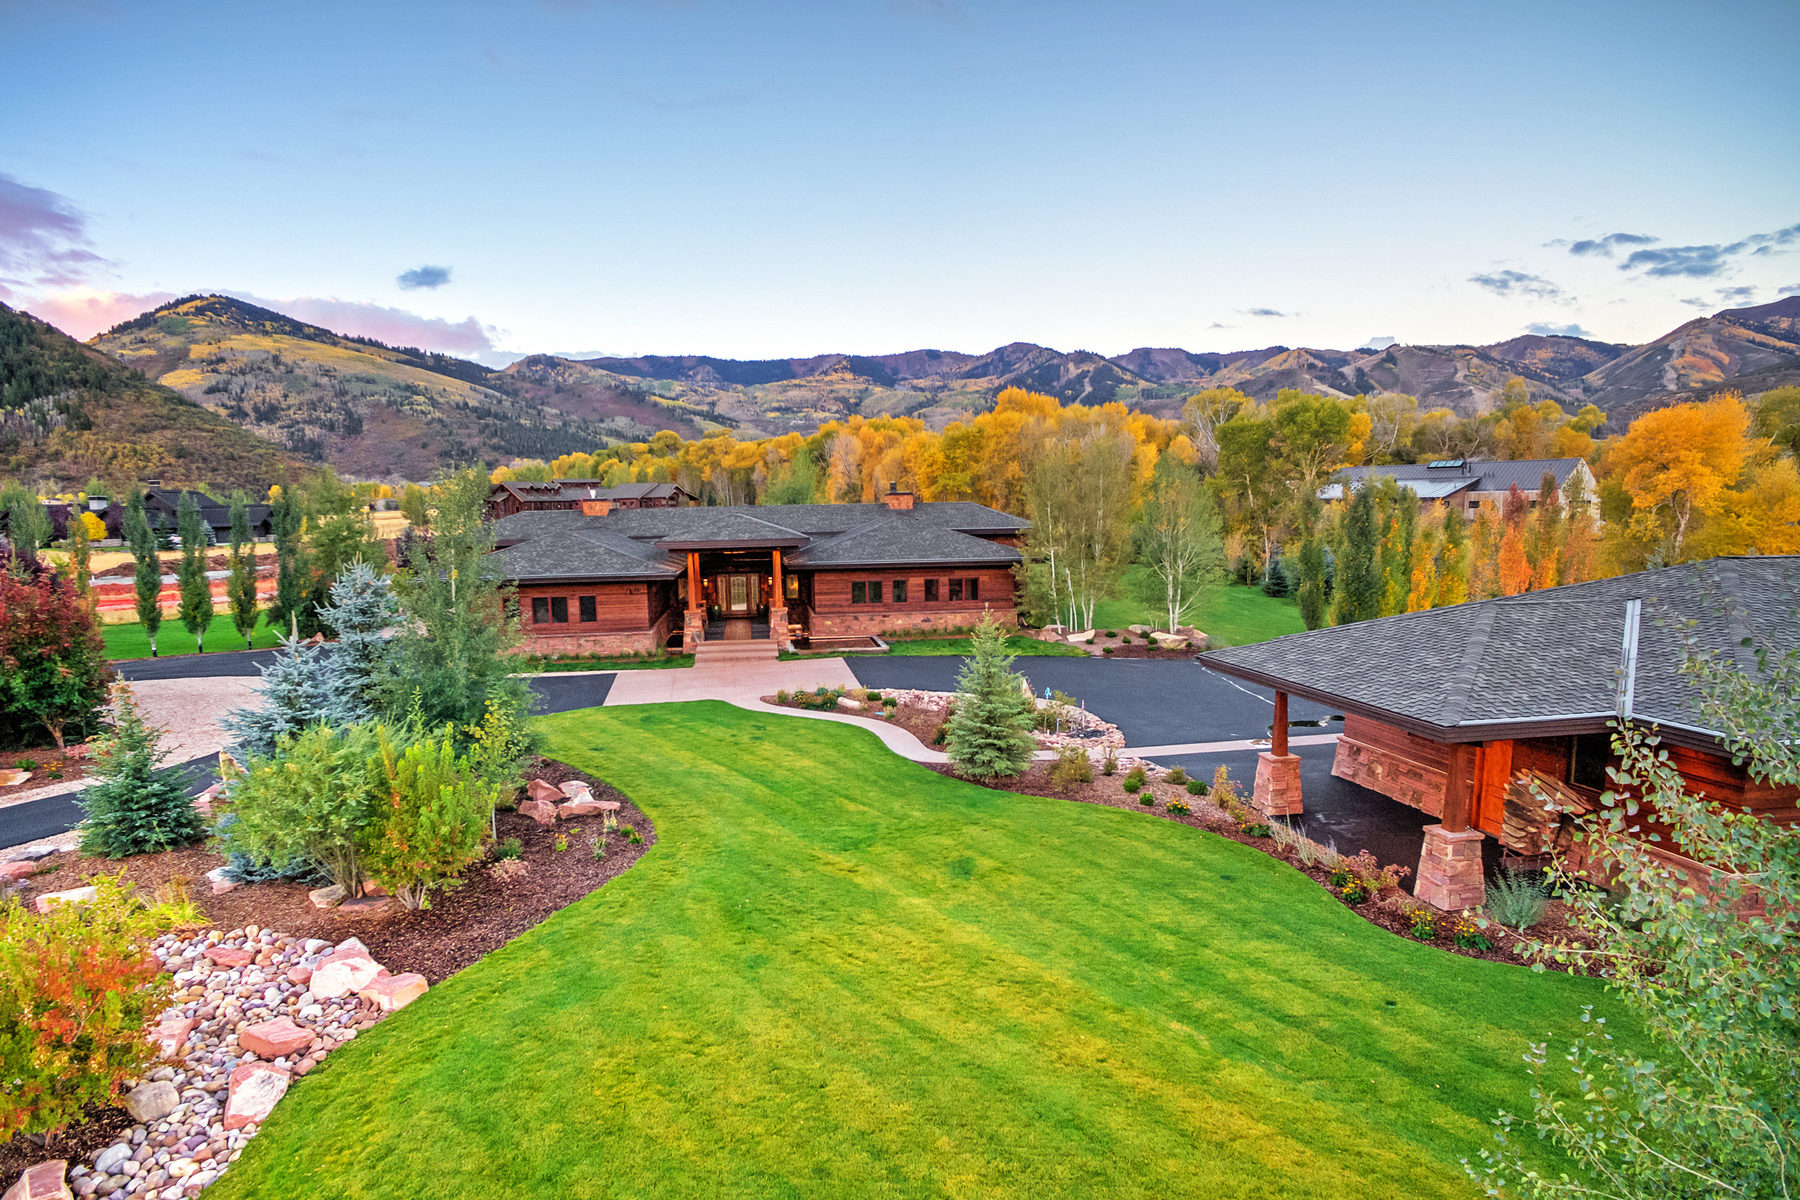 Single Family Home for Sale at Old Ranch Road Sanctuary with Guest Home 4275 Quarry Mountain Rd Park City, Utah, 84098 United States